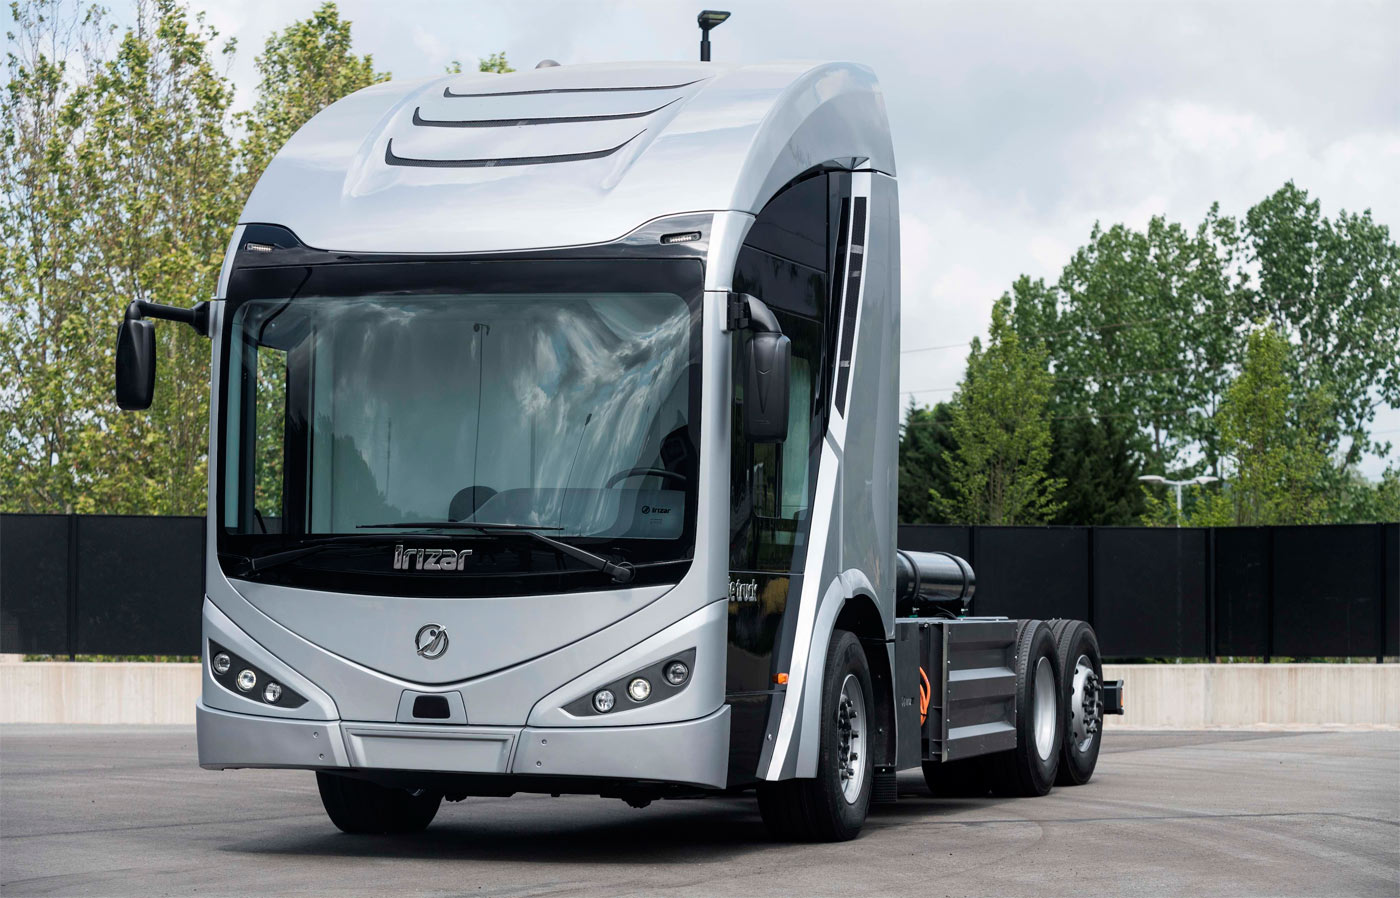 Trucksplanet Updates Scania Irizar Wiring Diagram The Ie 6x2 Is Initially Targeting Municipal Uses Access To A Spacious Cabin With Low Floor Carried Out Through Automatic Door Of Bus